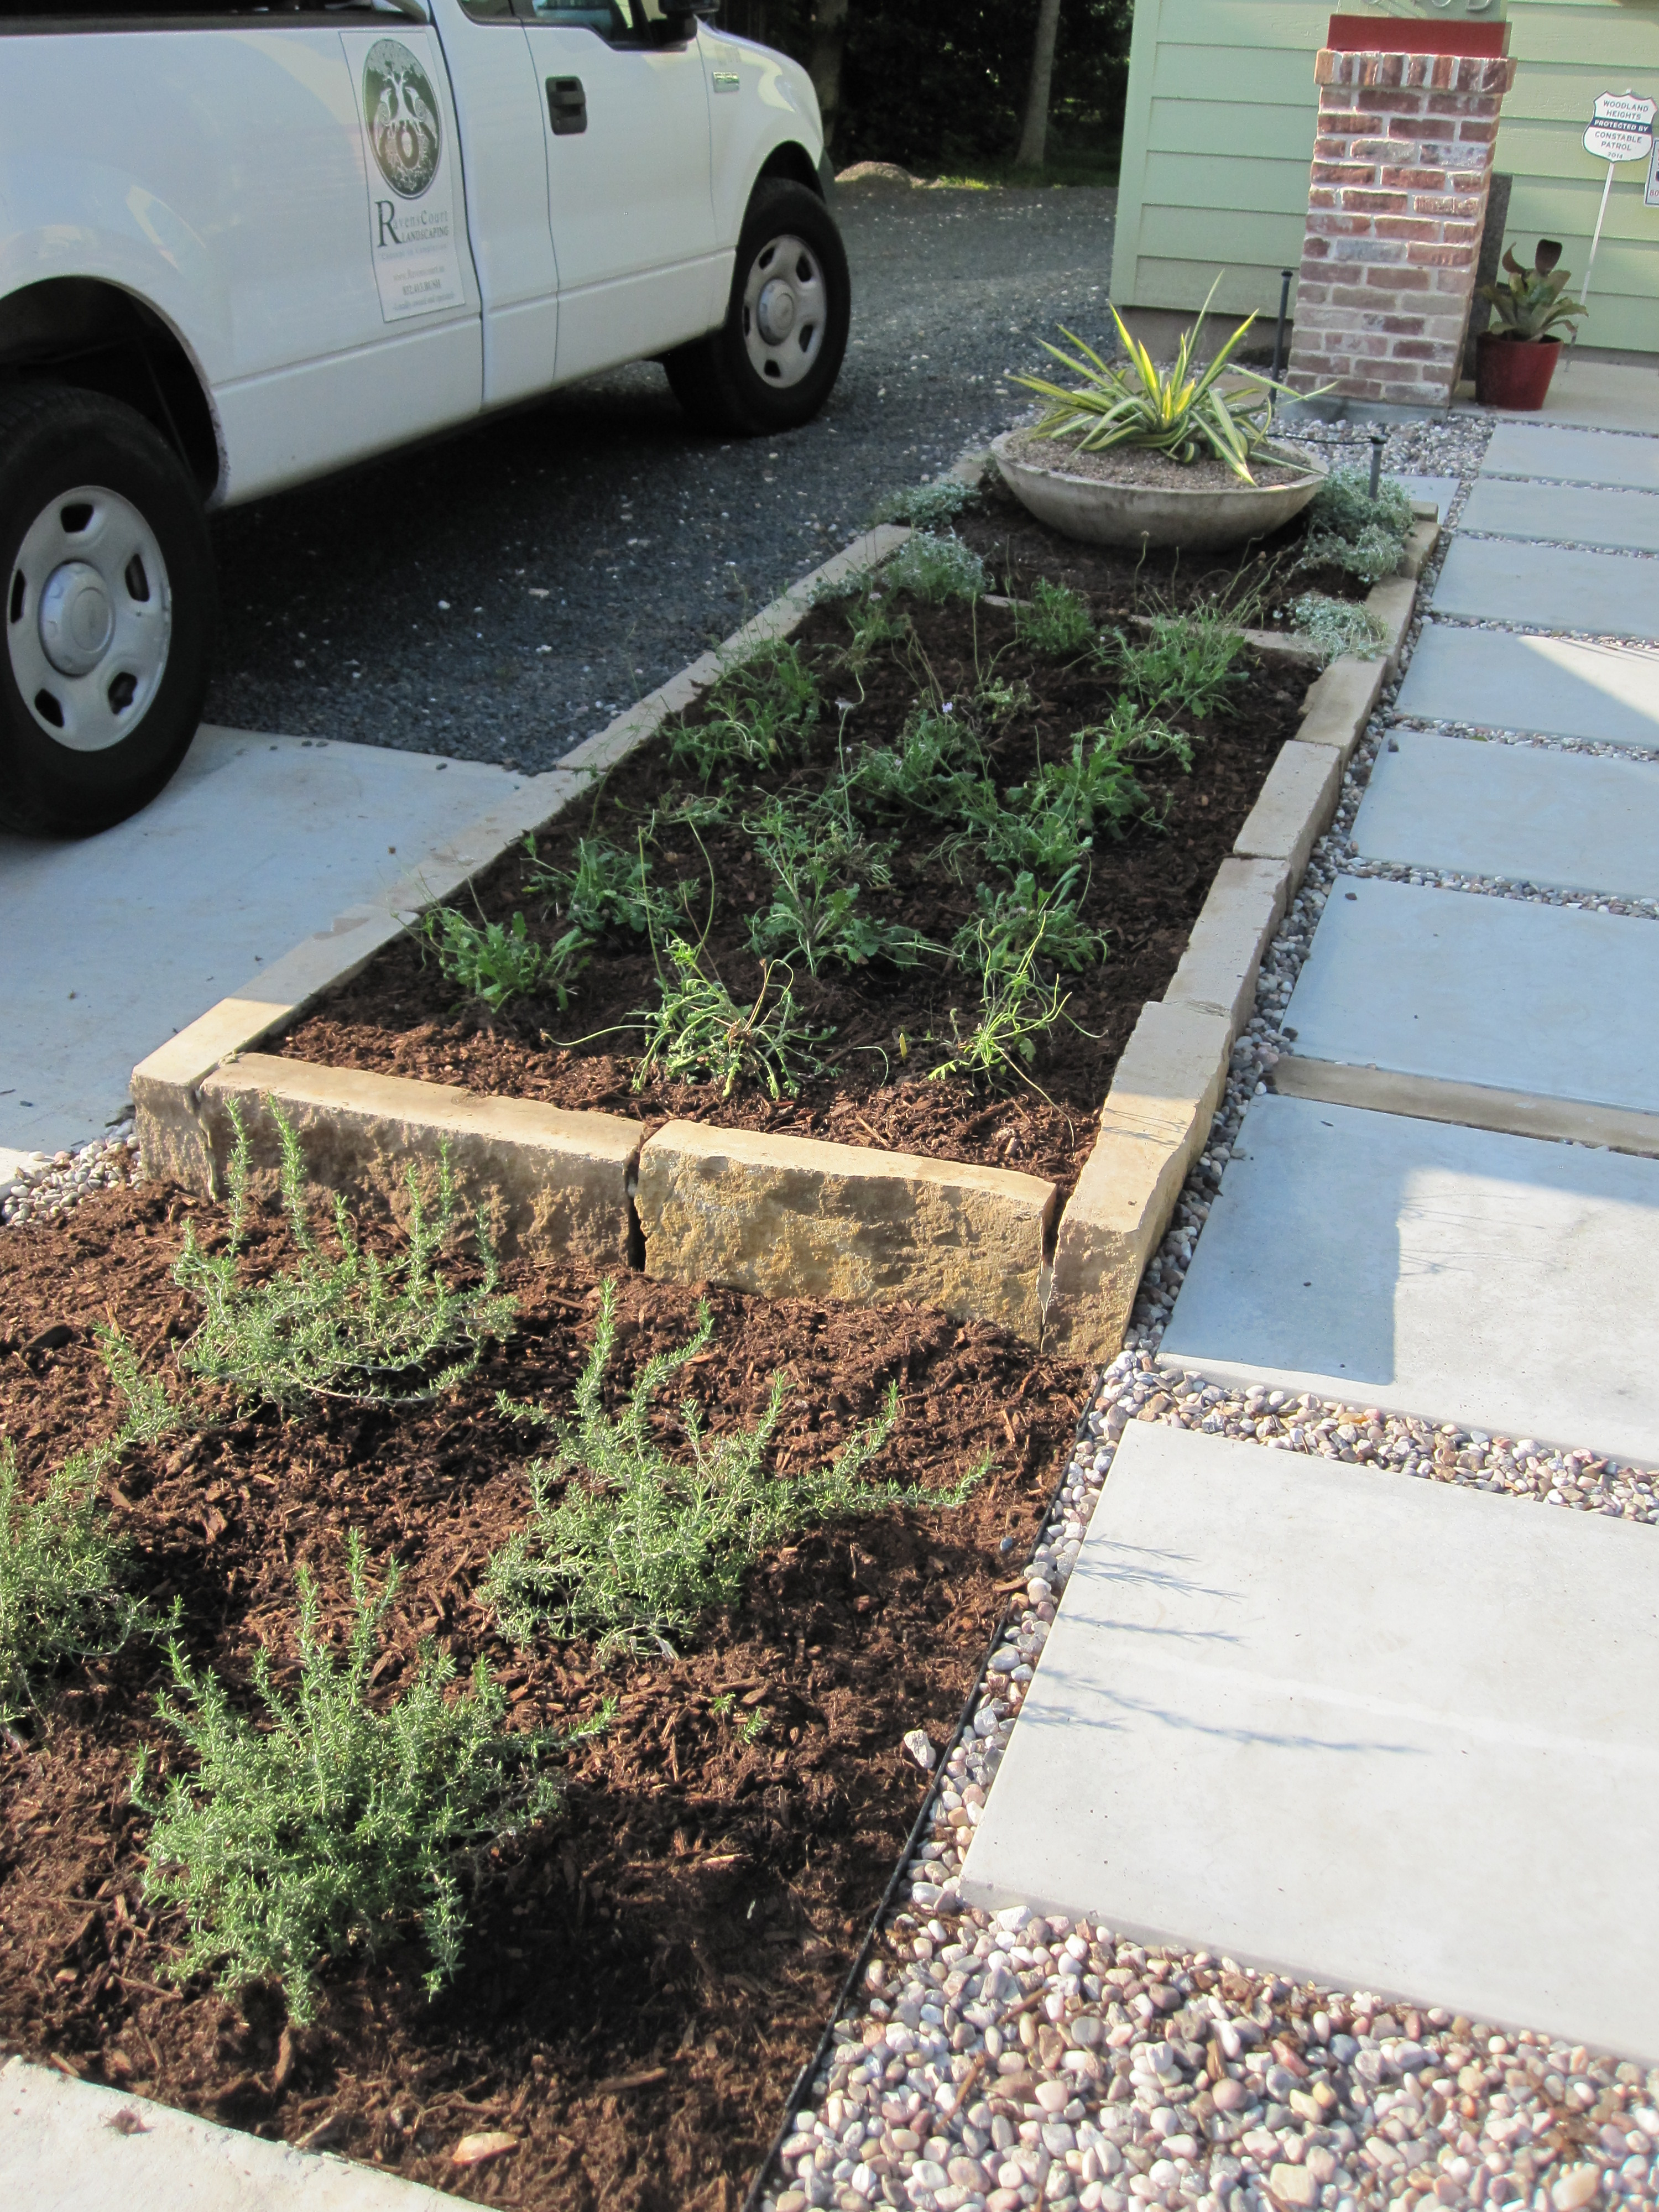 From Weeds To No Mow Austin Style Garden Part 2 The